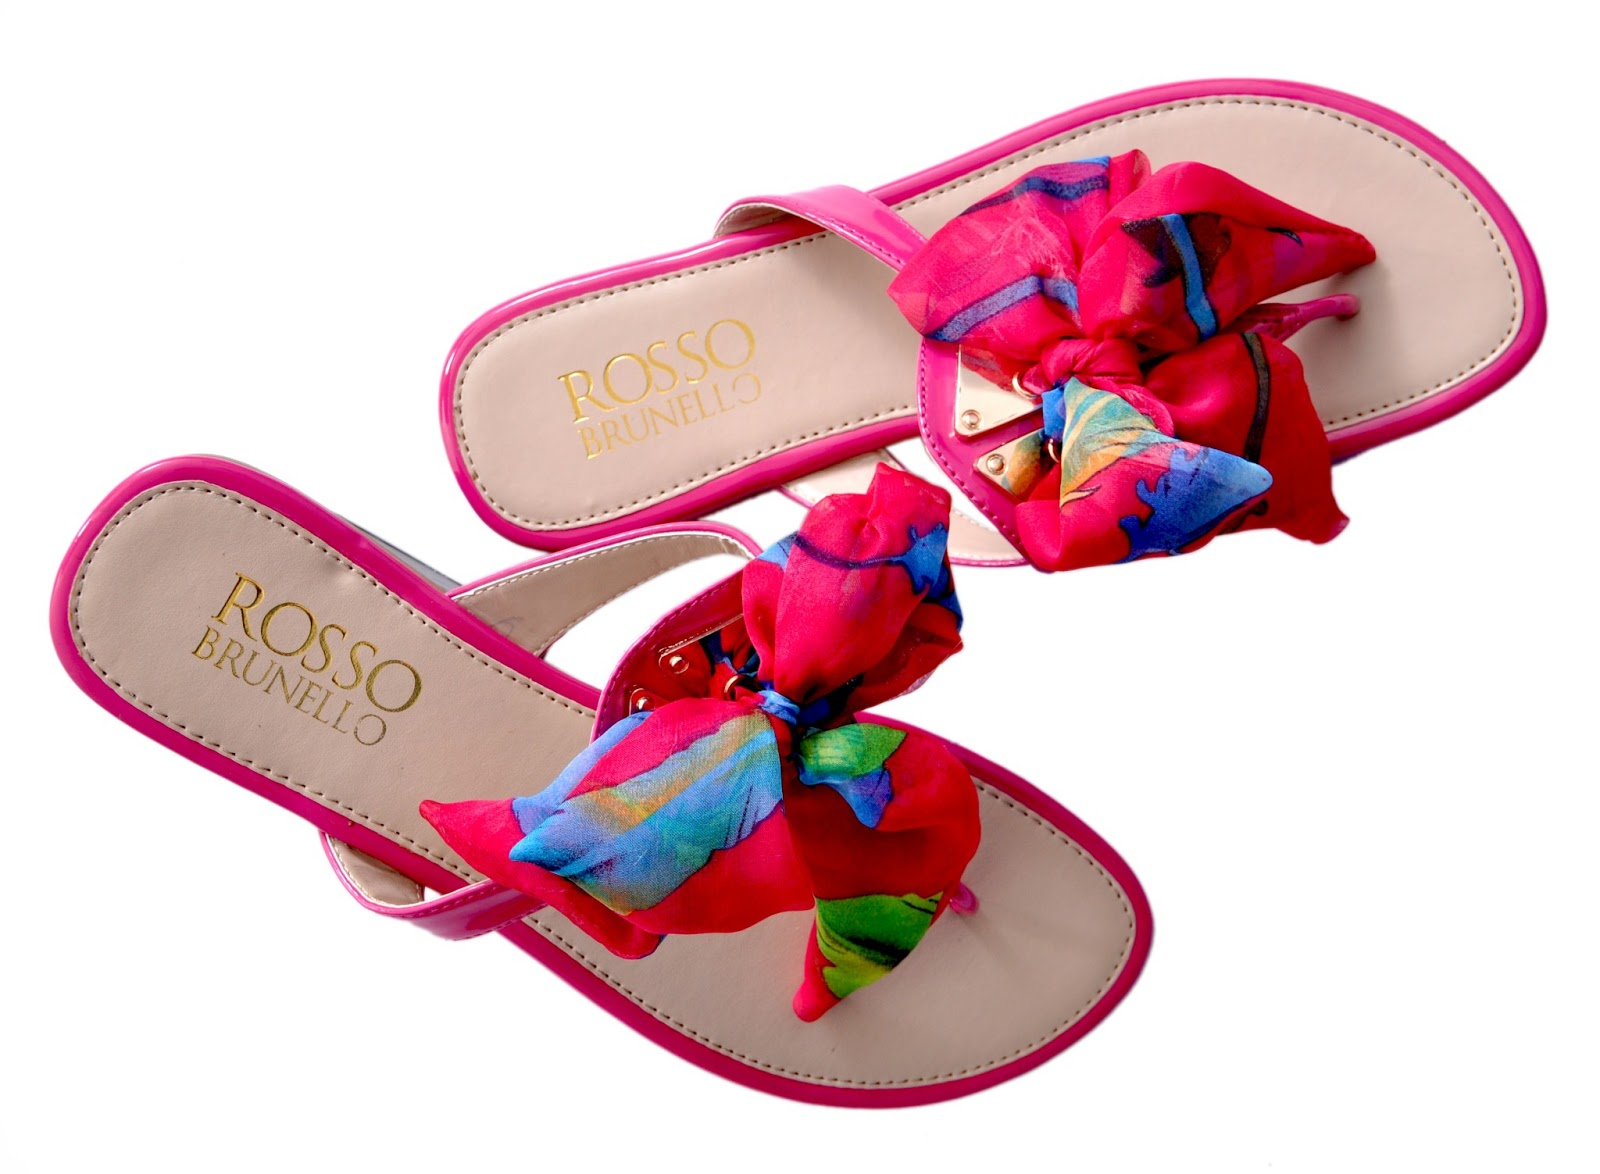 29b844d0c138b2 With arrival of spring summer update your style quotient with Rosso  Brunello colorful slippers. These slippers are super stylish and with hint  of ...